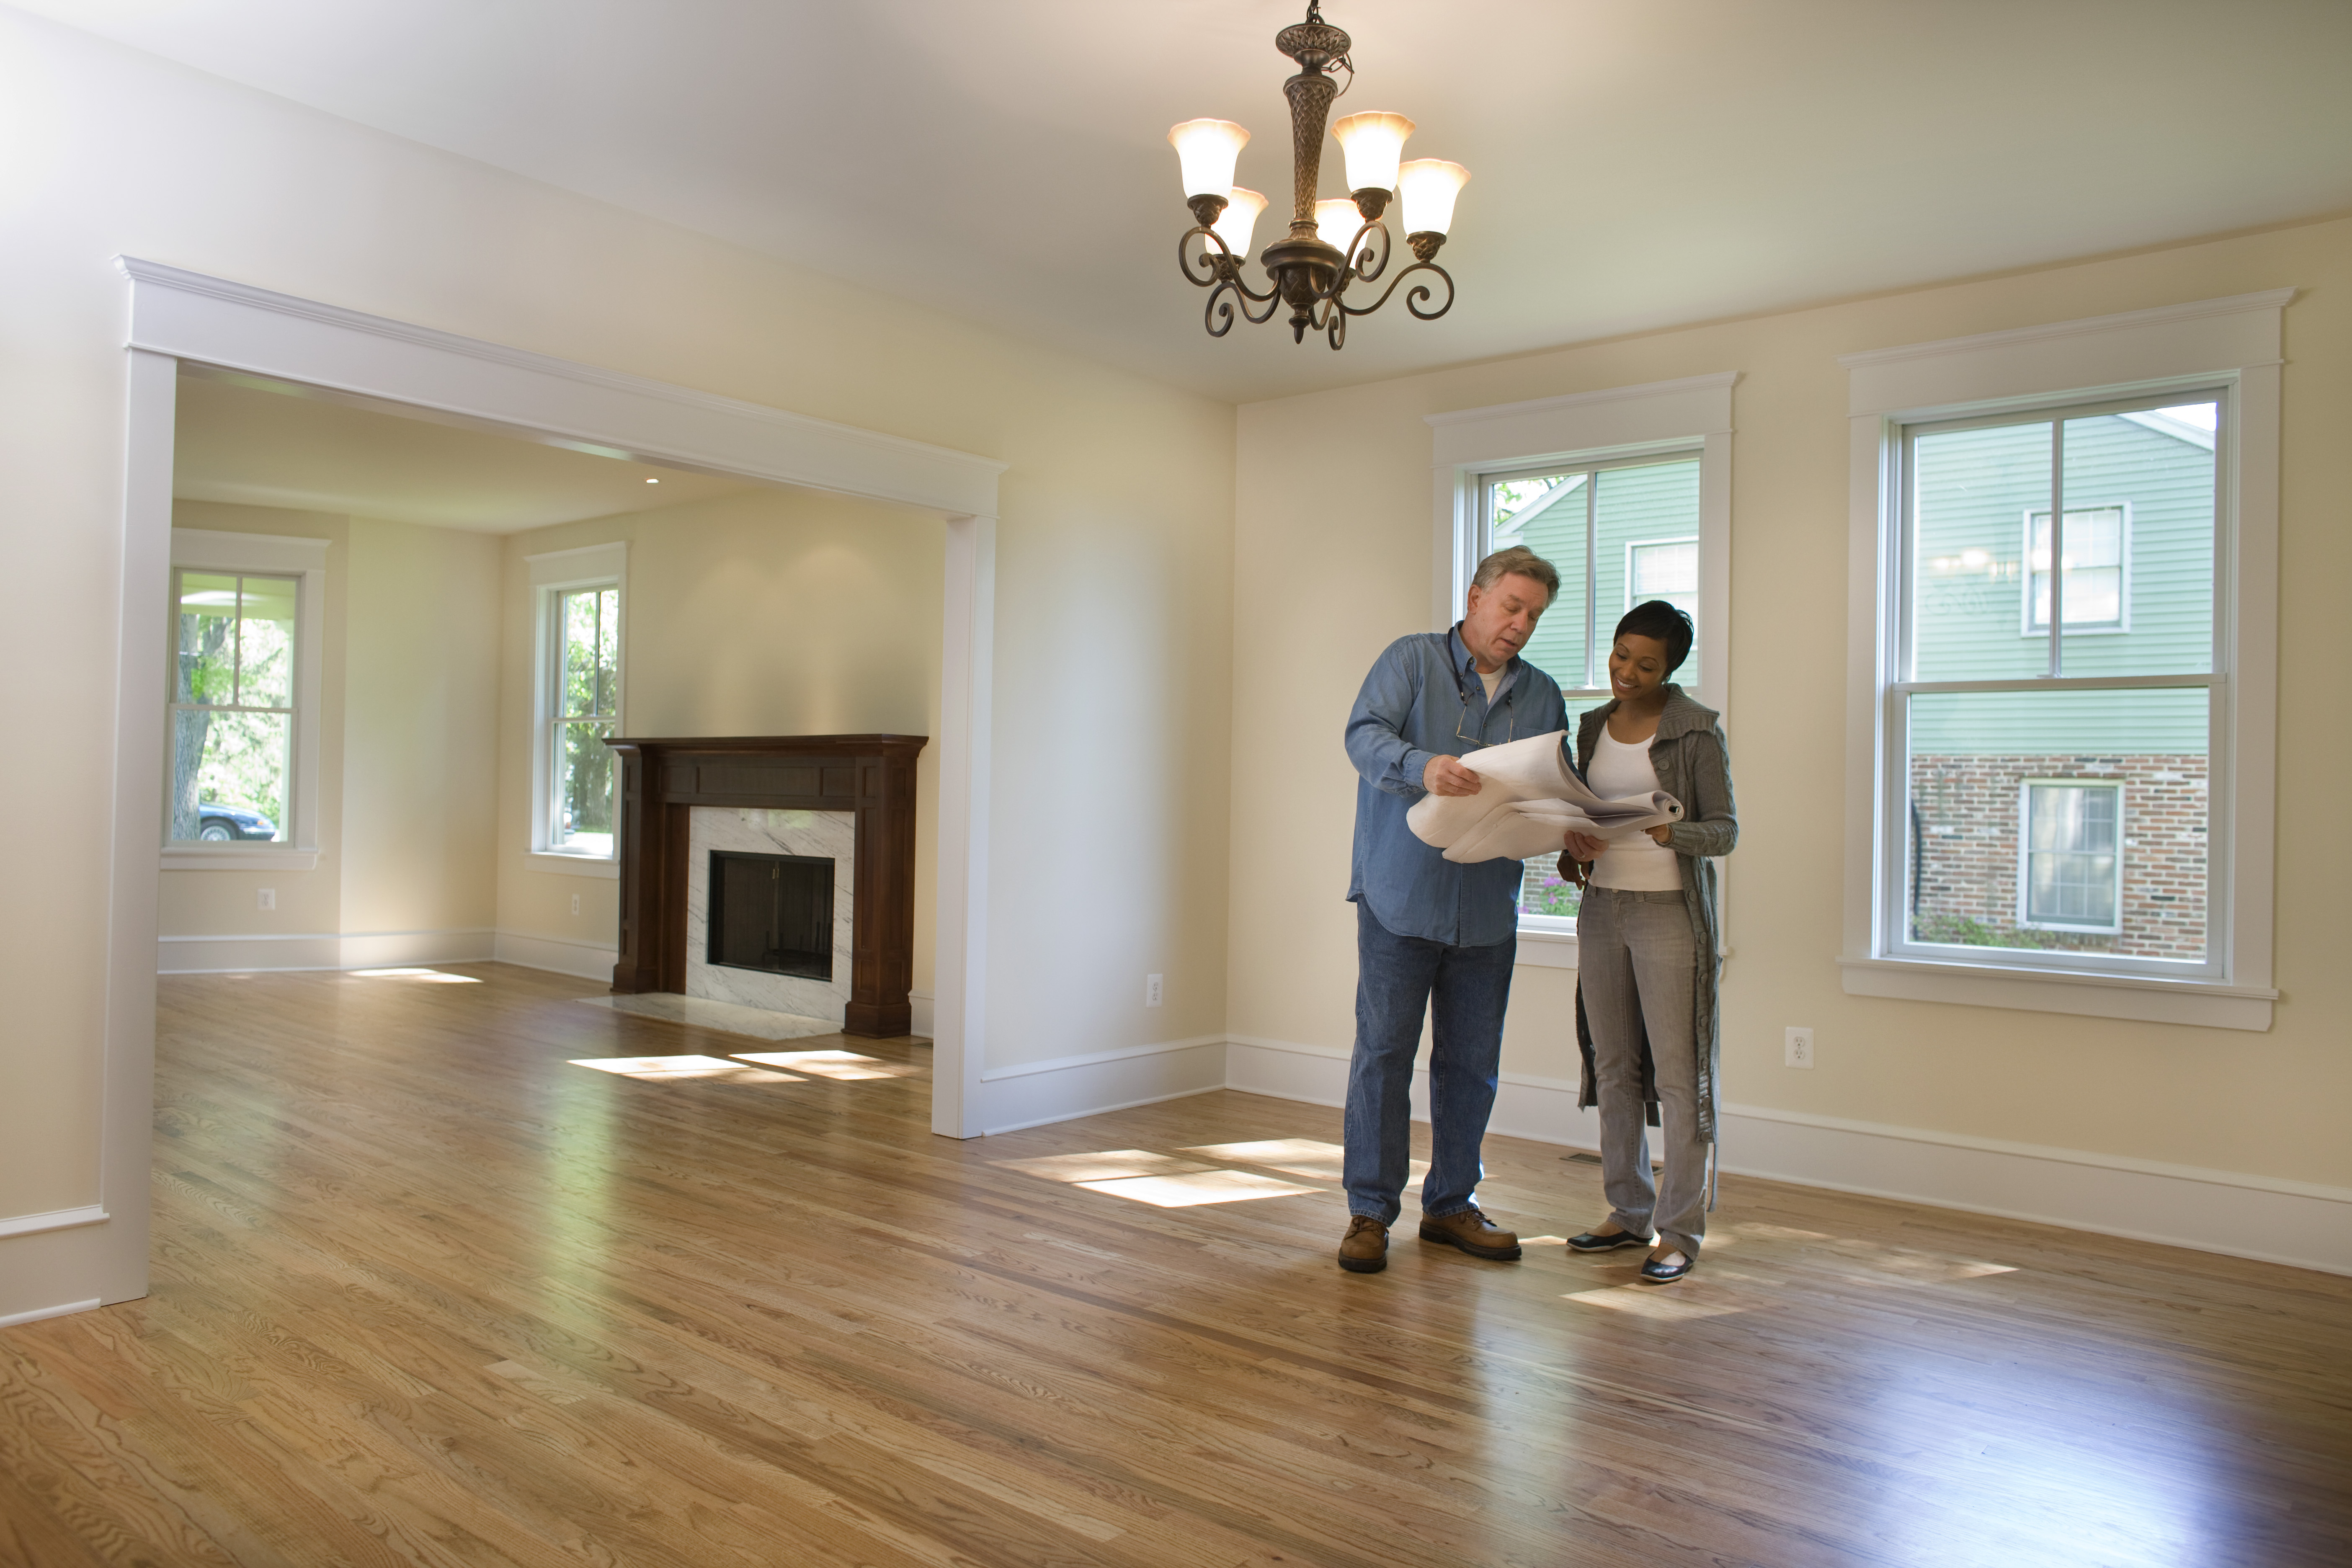 8 Issues Sellers Should Address BEFORE The Home Inspector Does